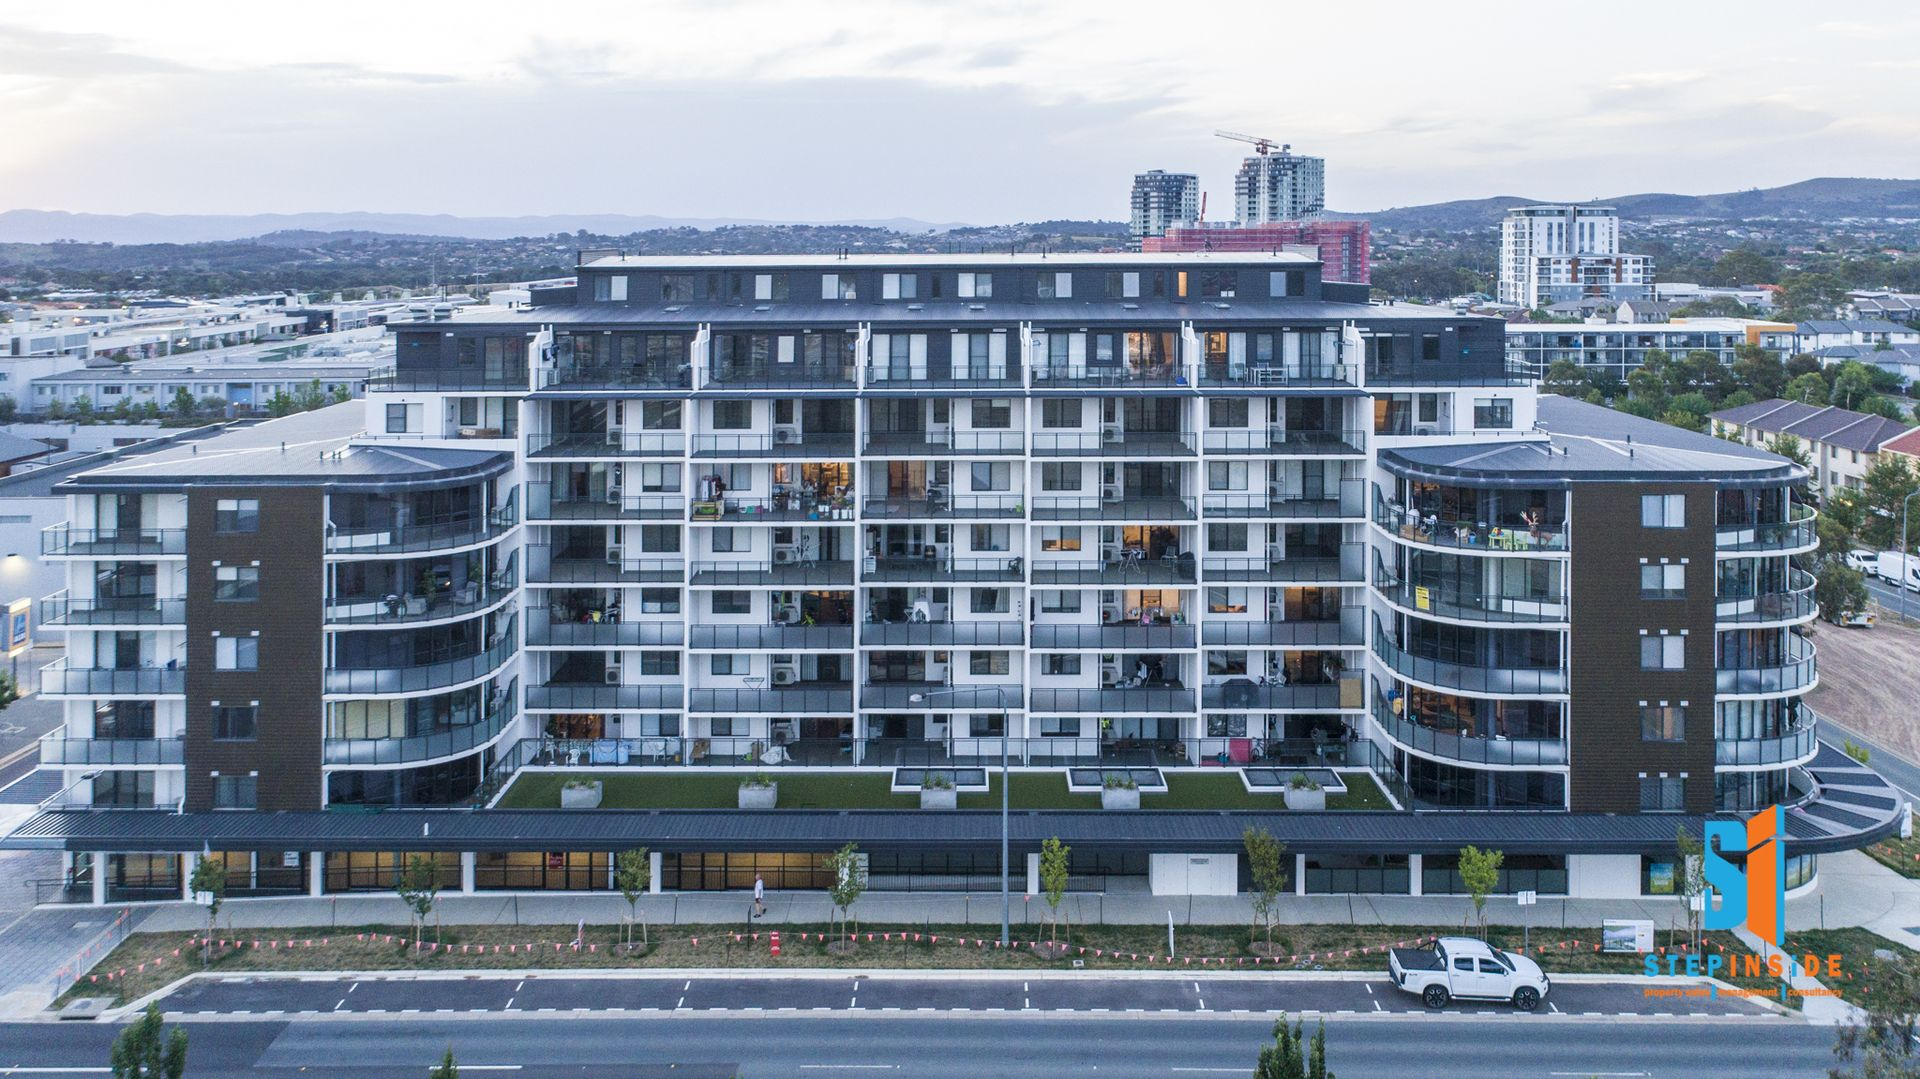 128/2 Hinder Street, Gungahlin ACT 2912, Image 0